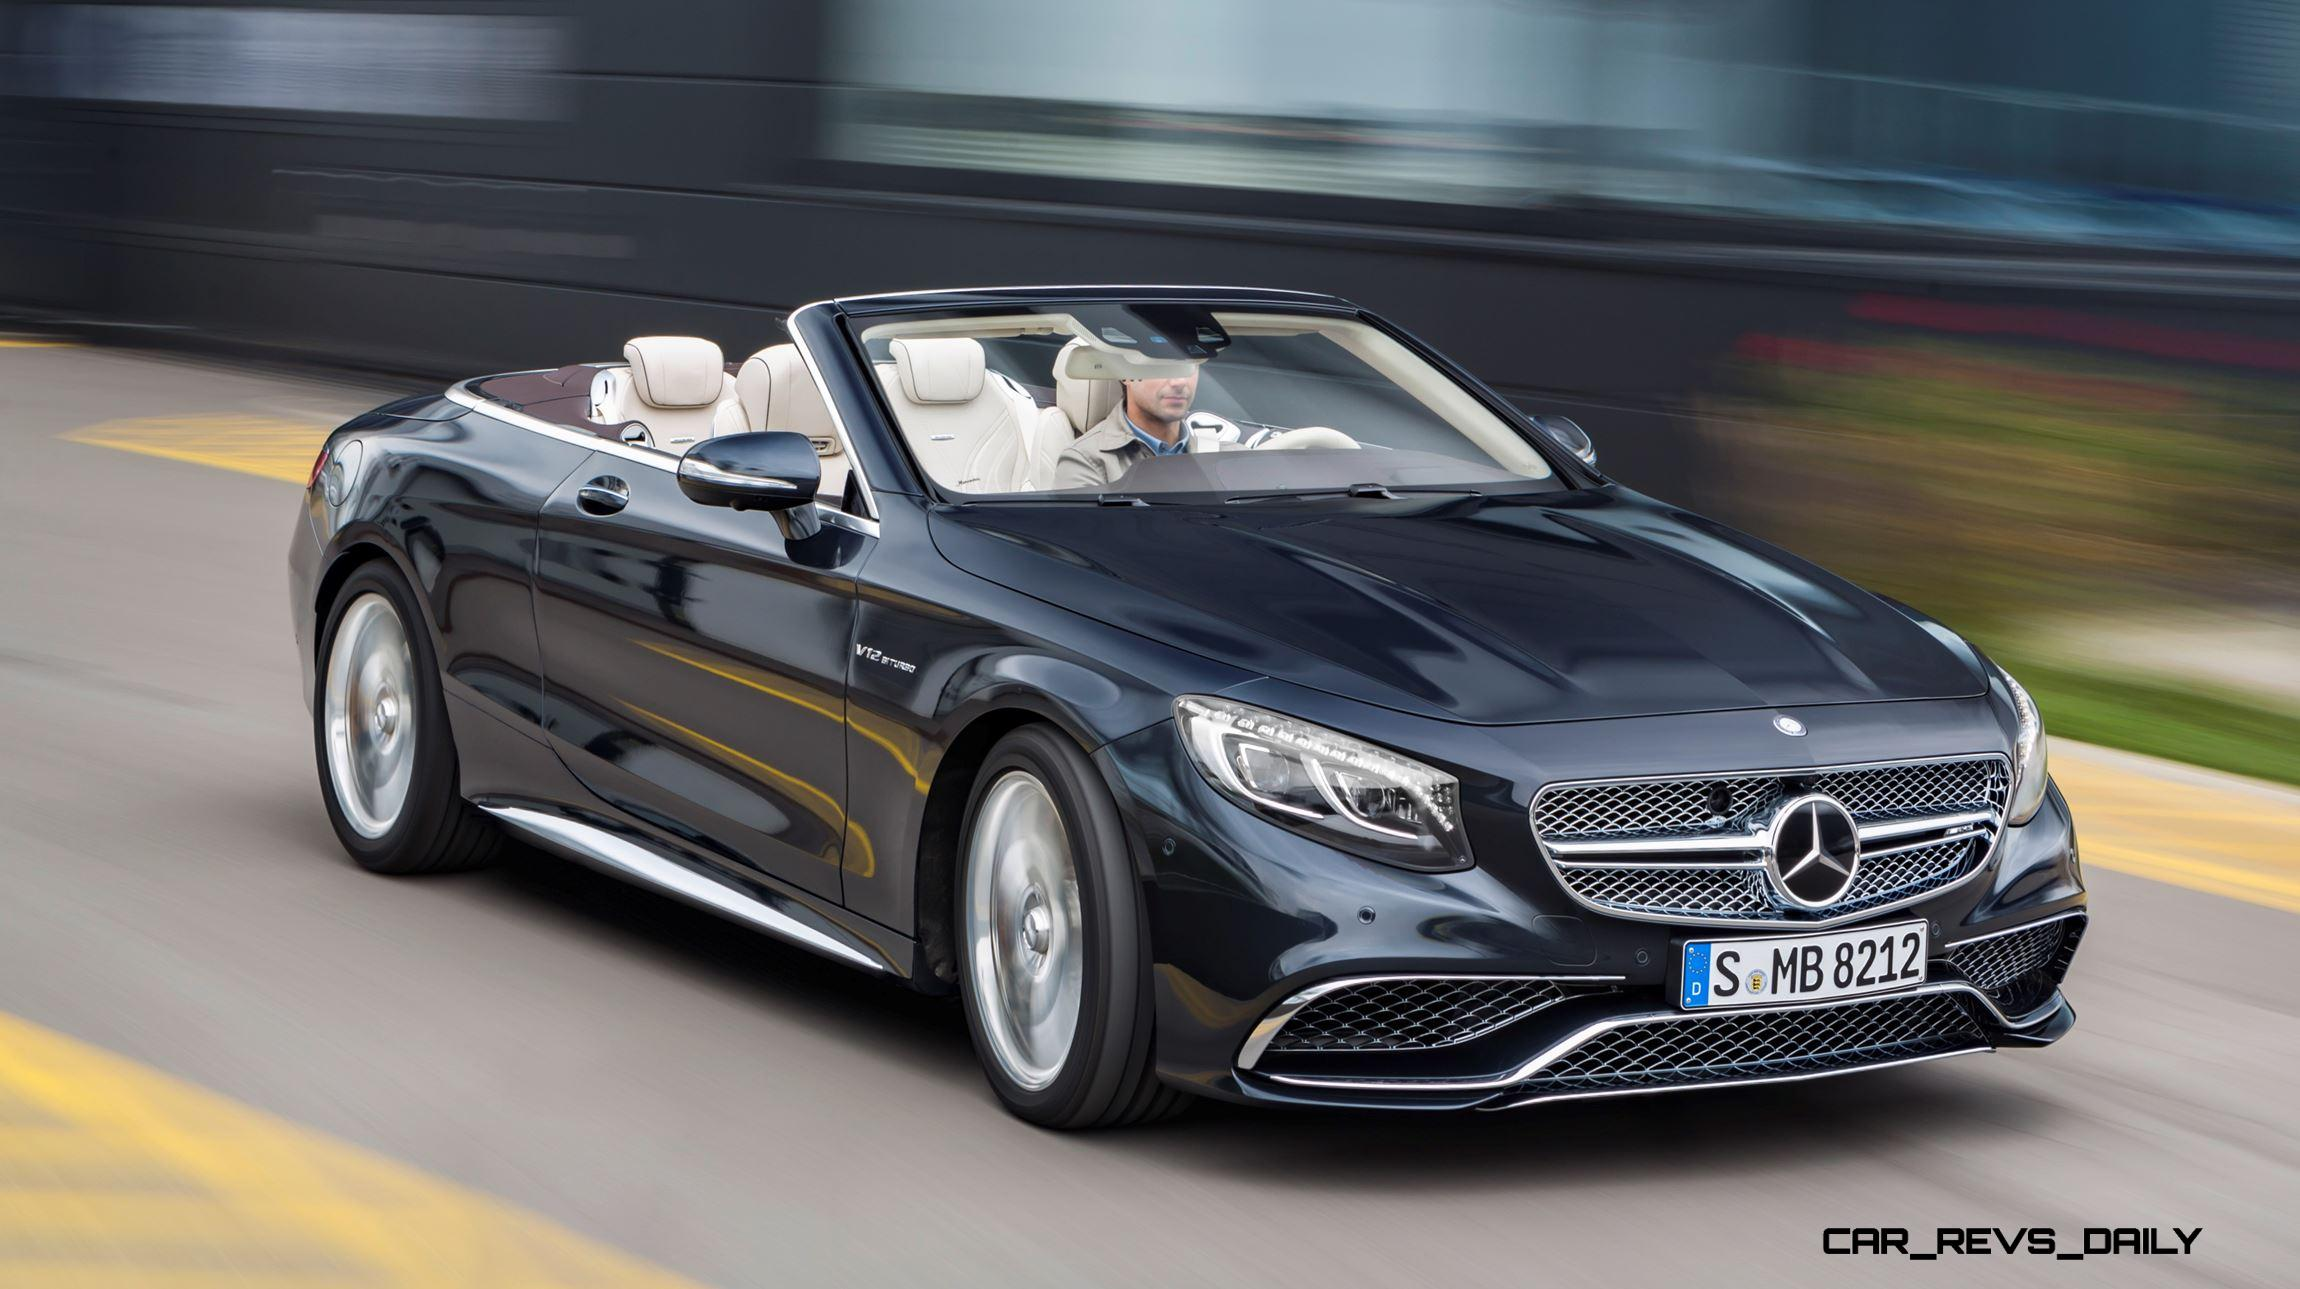 630hp v12tt 2017 mercedes amg s65 cabriolet arrives in may bentley gtc and rr dawn beware. Black Bedroom Furniture Sets. Home Design Ideas